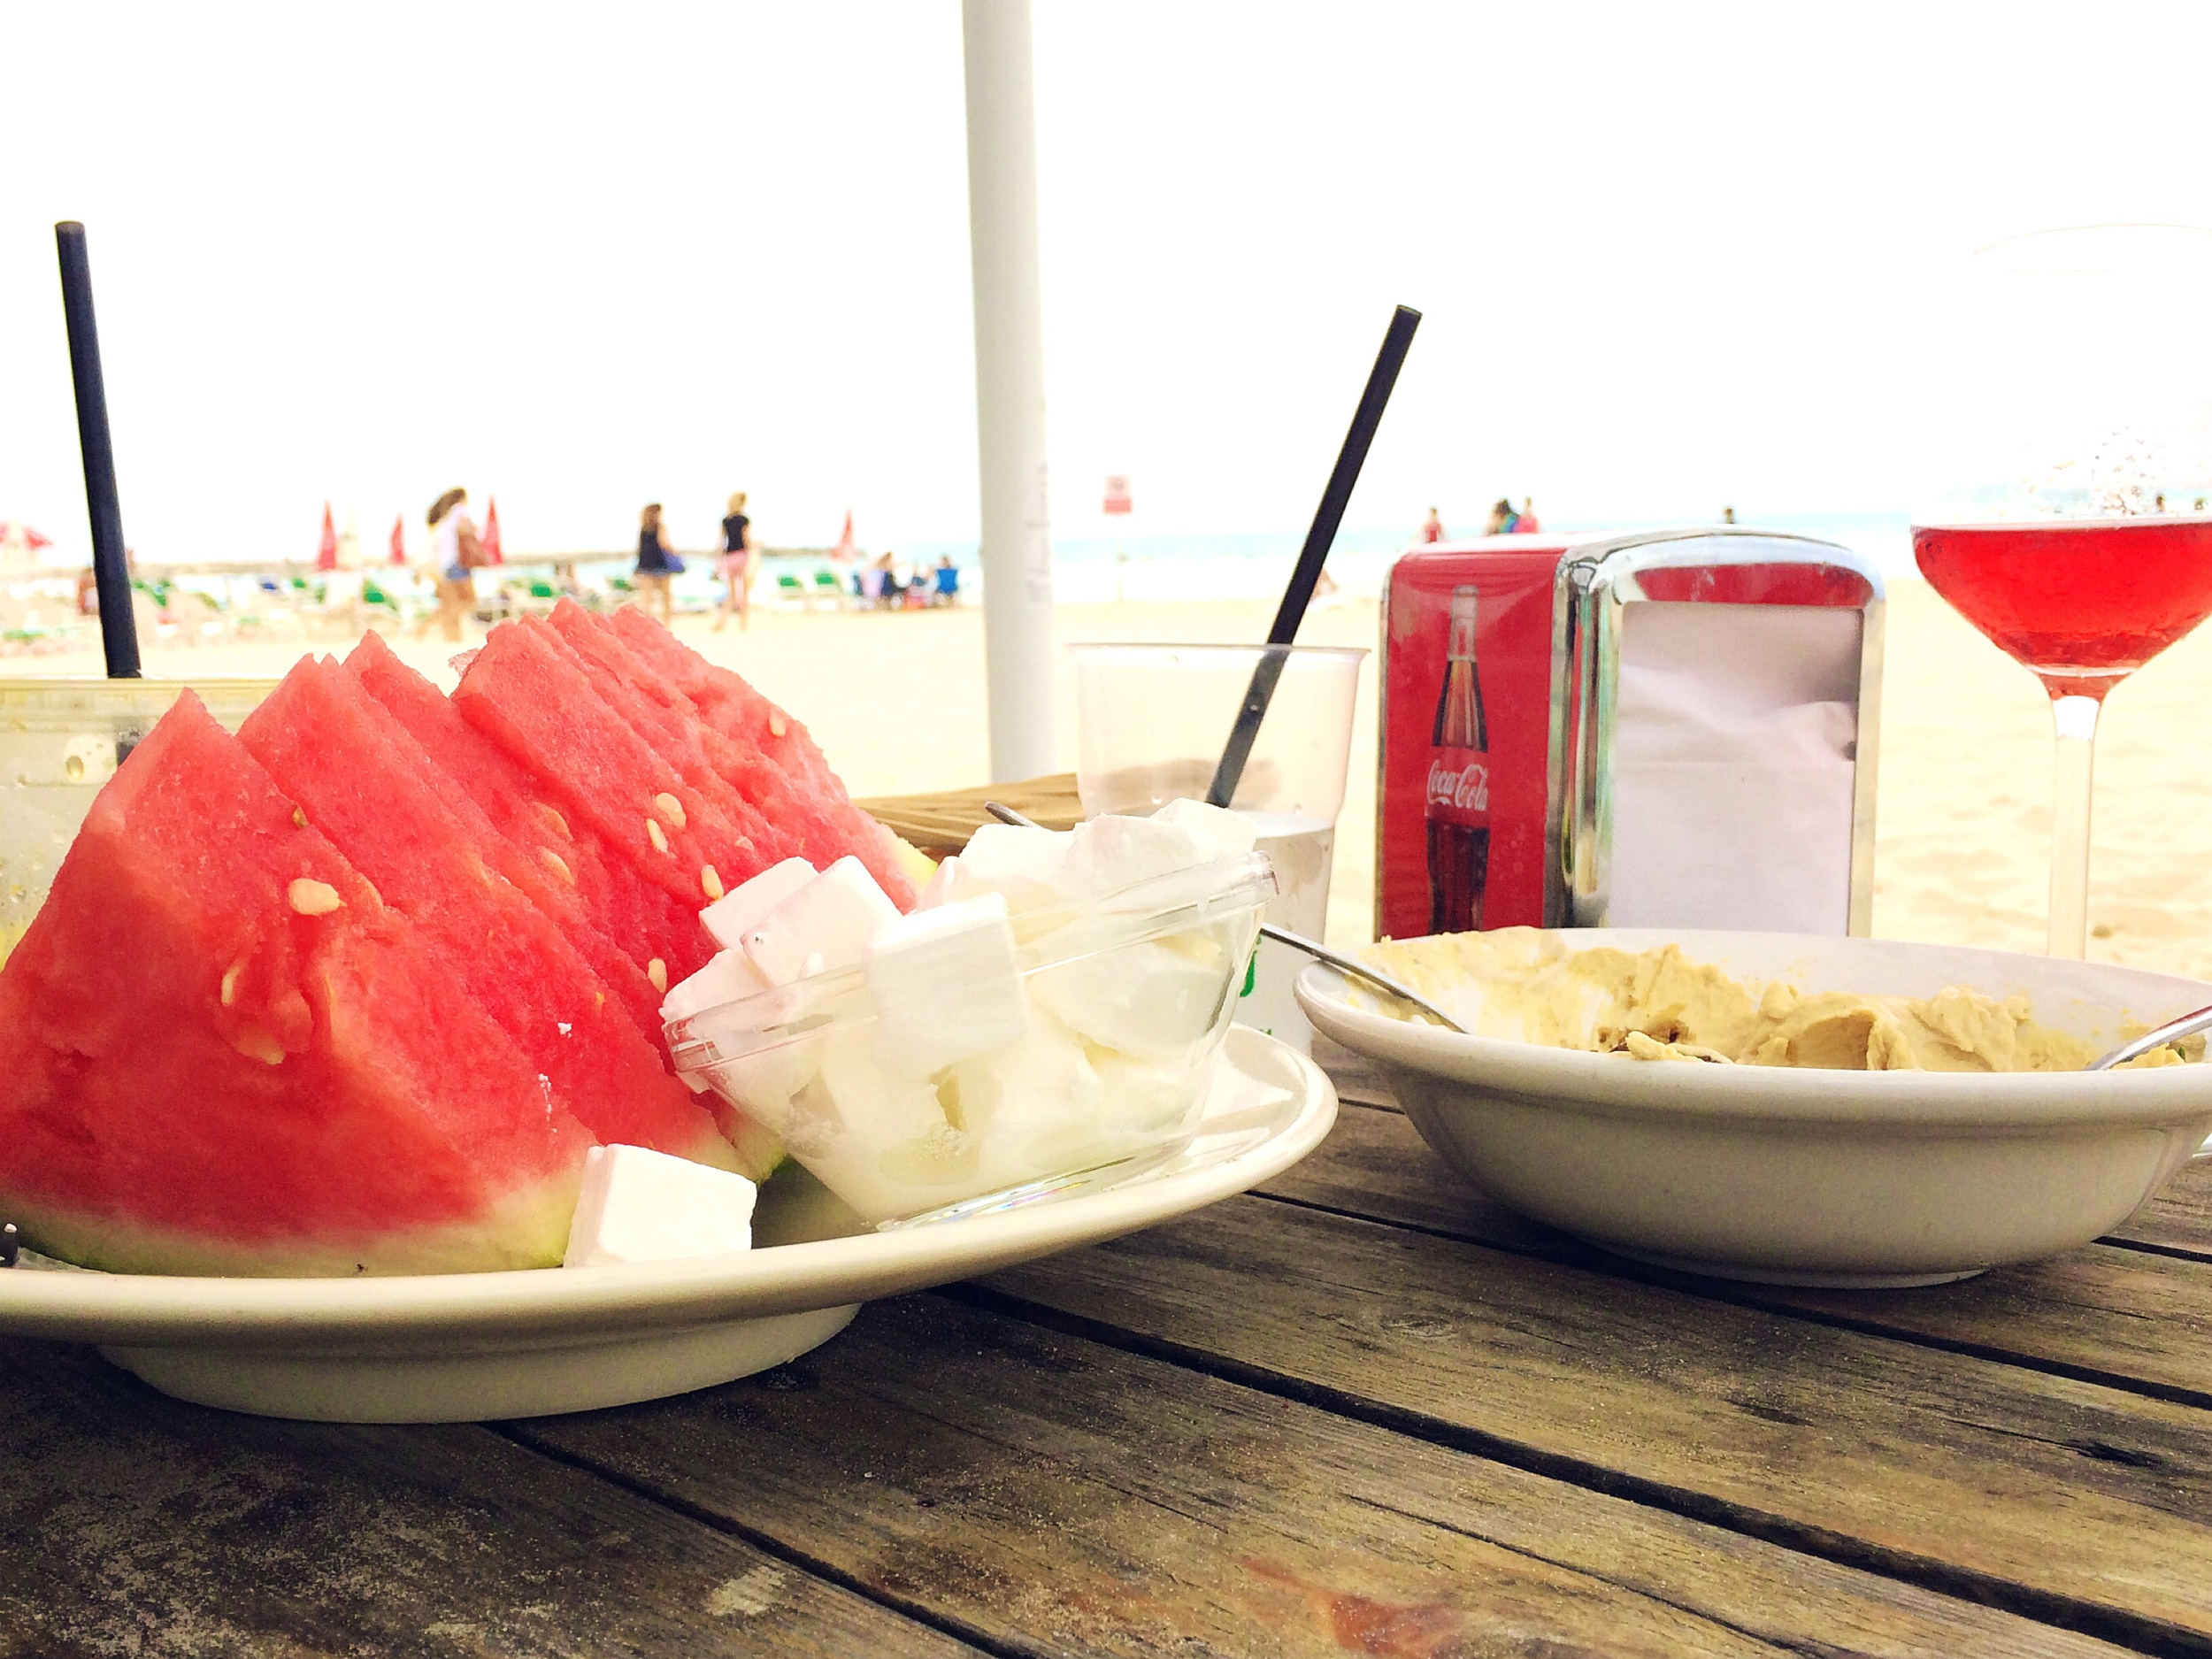 So is Watermelon with Feta cheese.